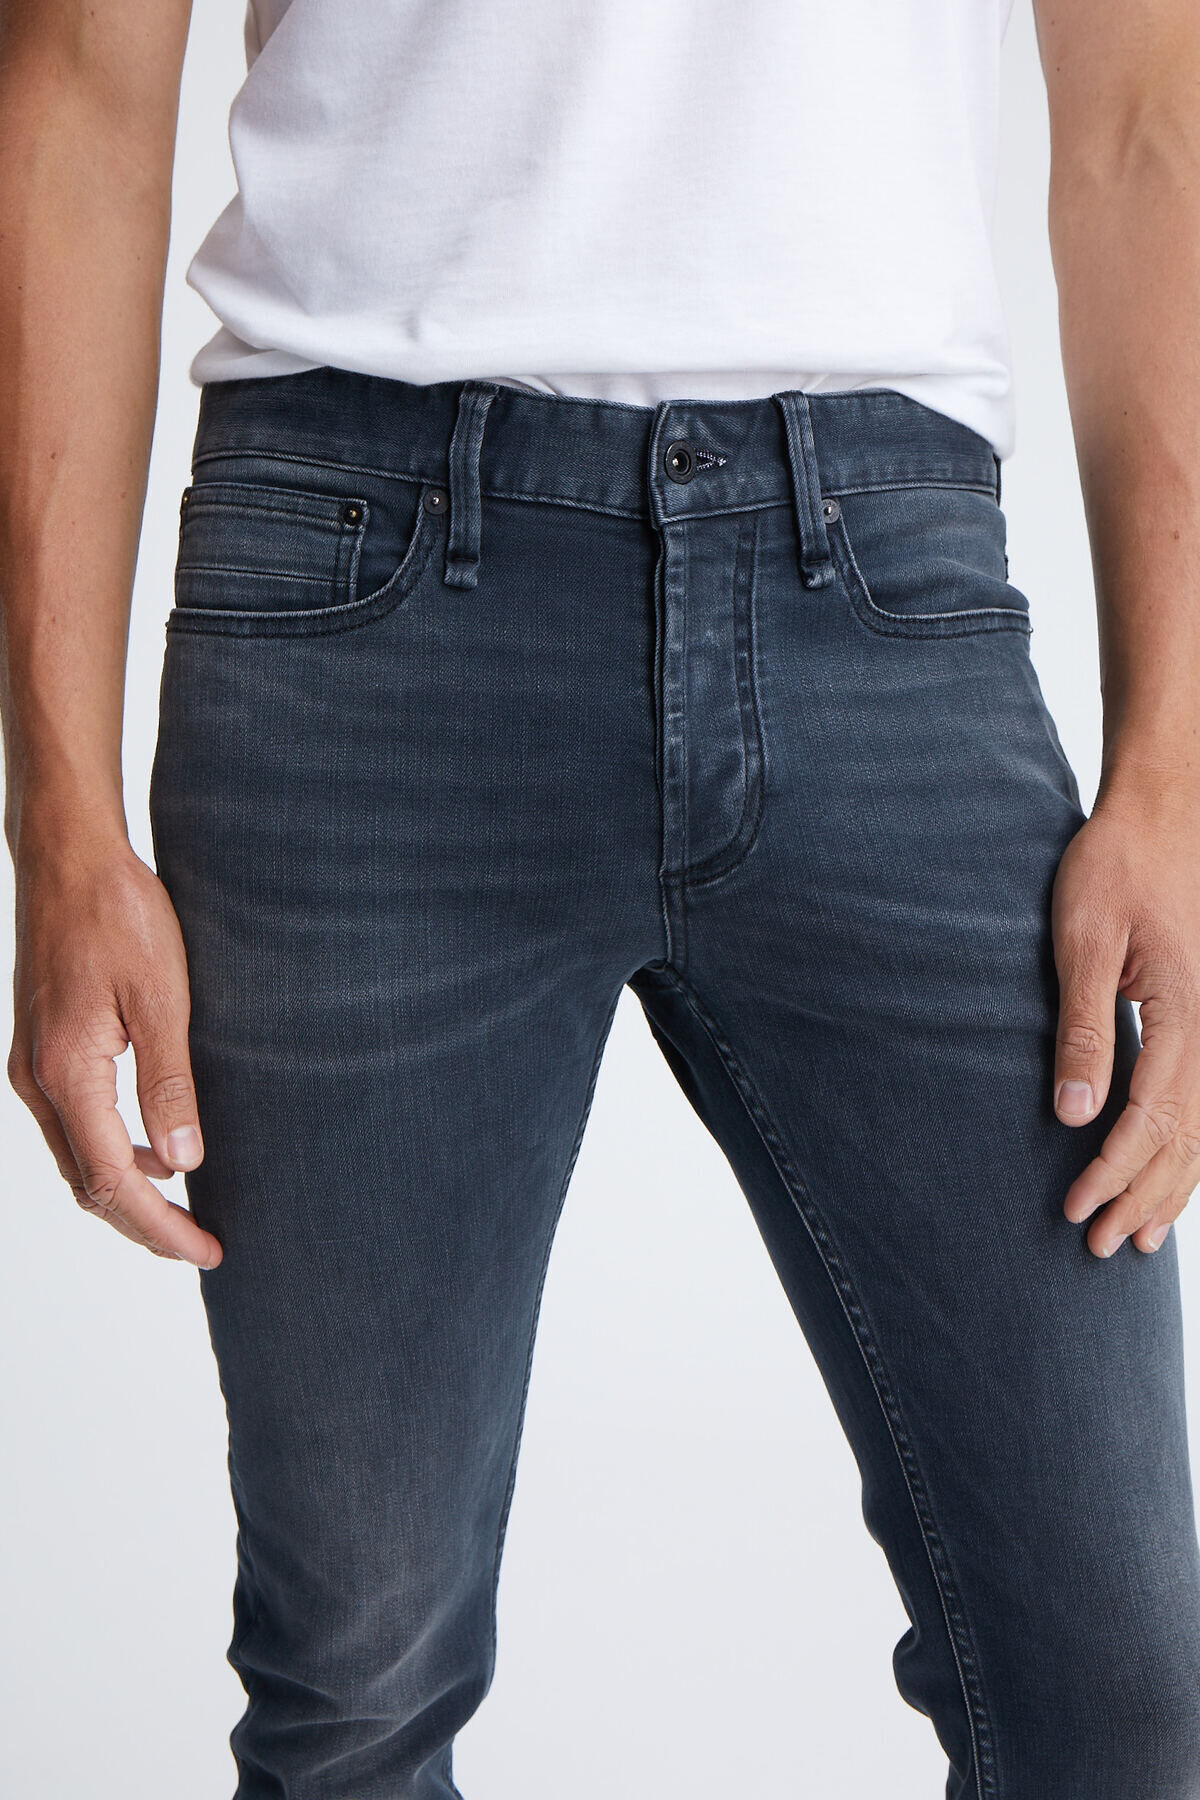 BOLT Black Faded Denim - Skinny Fit